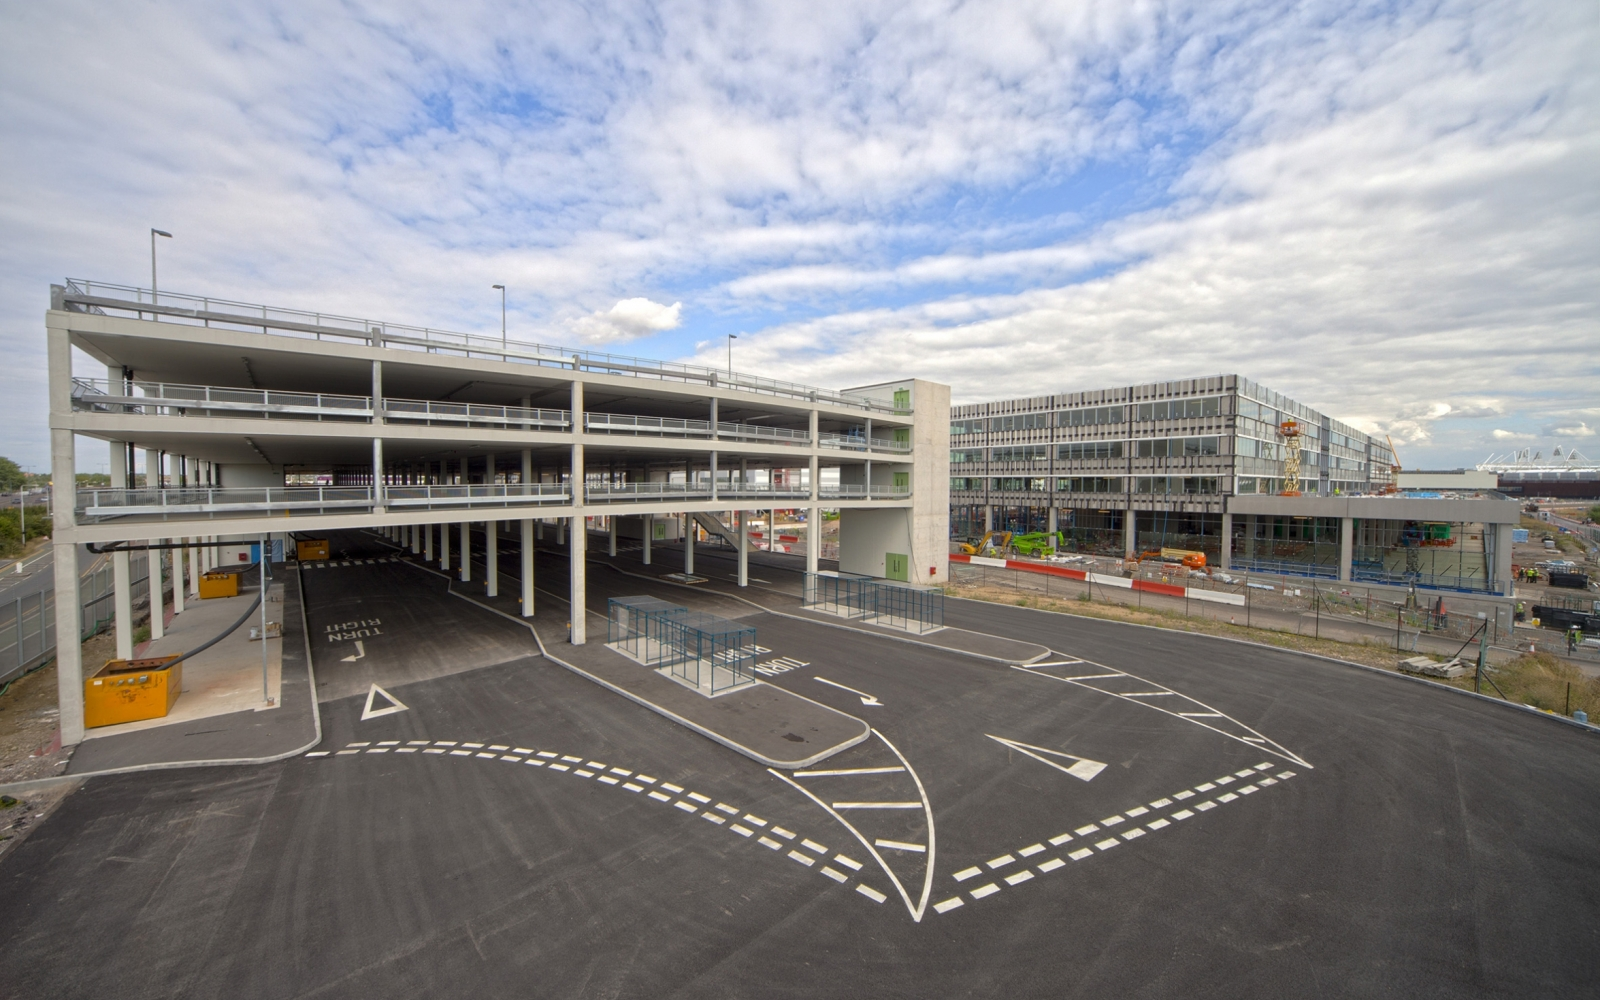 Design of car parking - The Superstructure Design Was Developed Using A Design For Manufacture And Assembly Dfma Alternative With A Precast Concrete And Component Beam